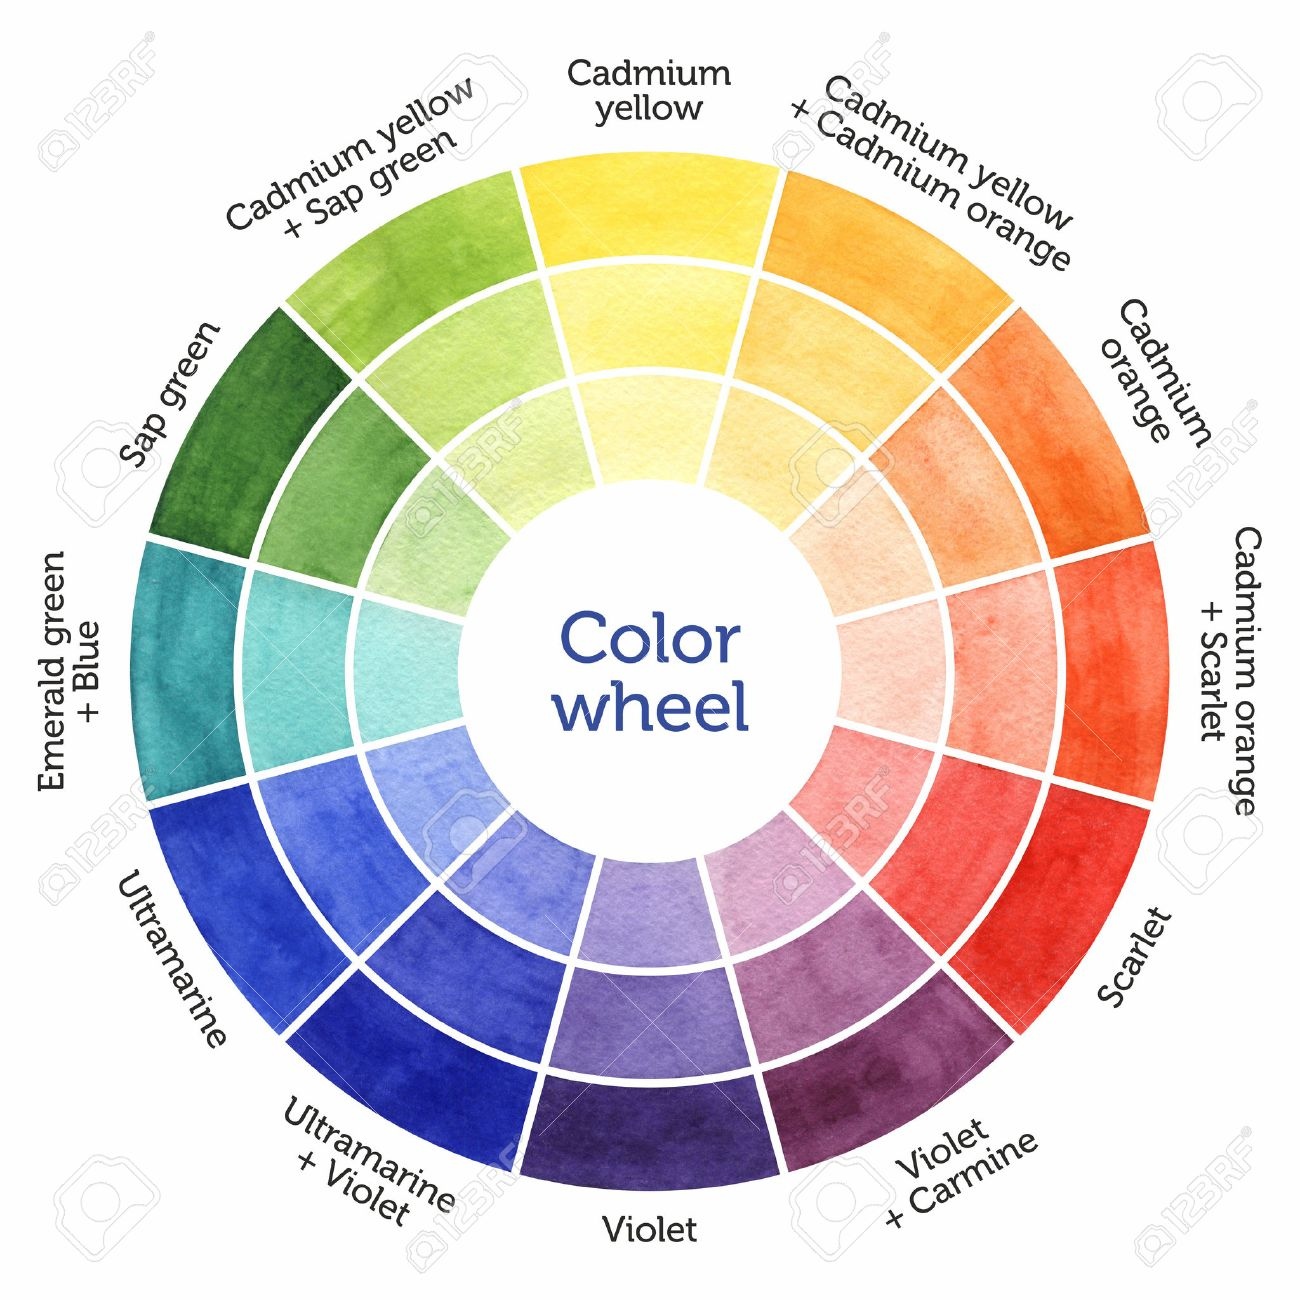 hand drawn color wheel color mixing chart for watercolor painting rh 123rf com PowerPoint Wheel Diagram Wheel Bearing Diagram